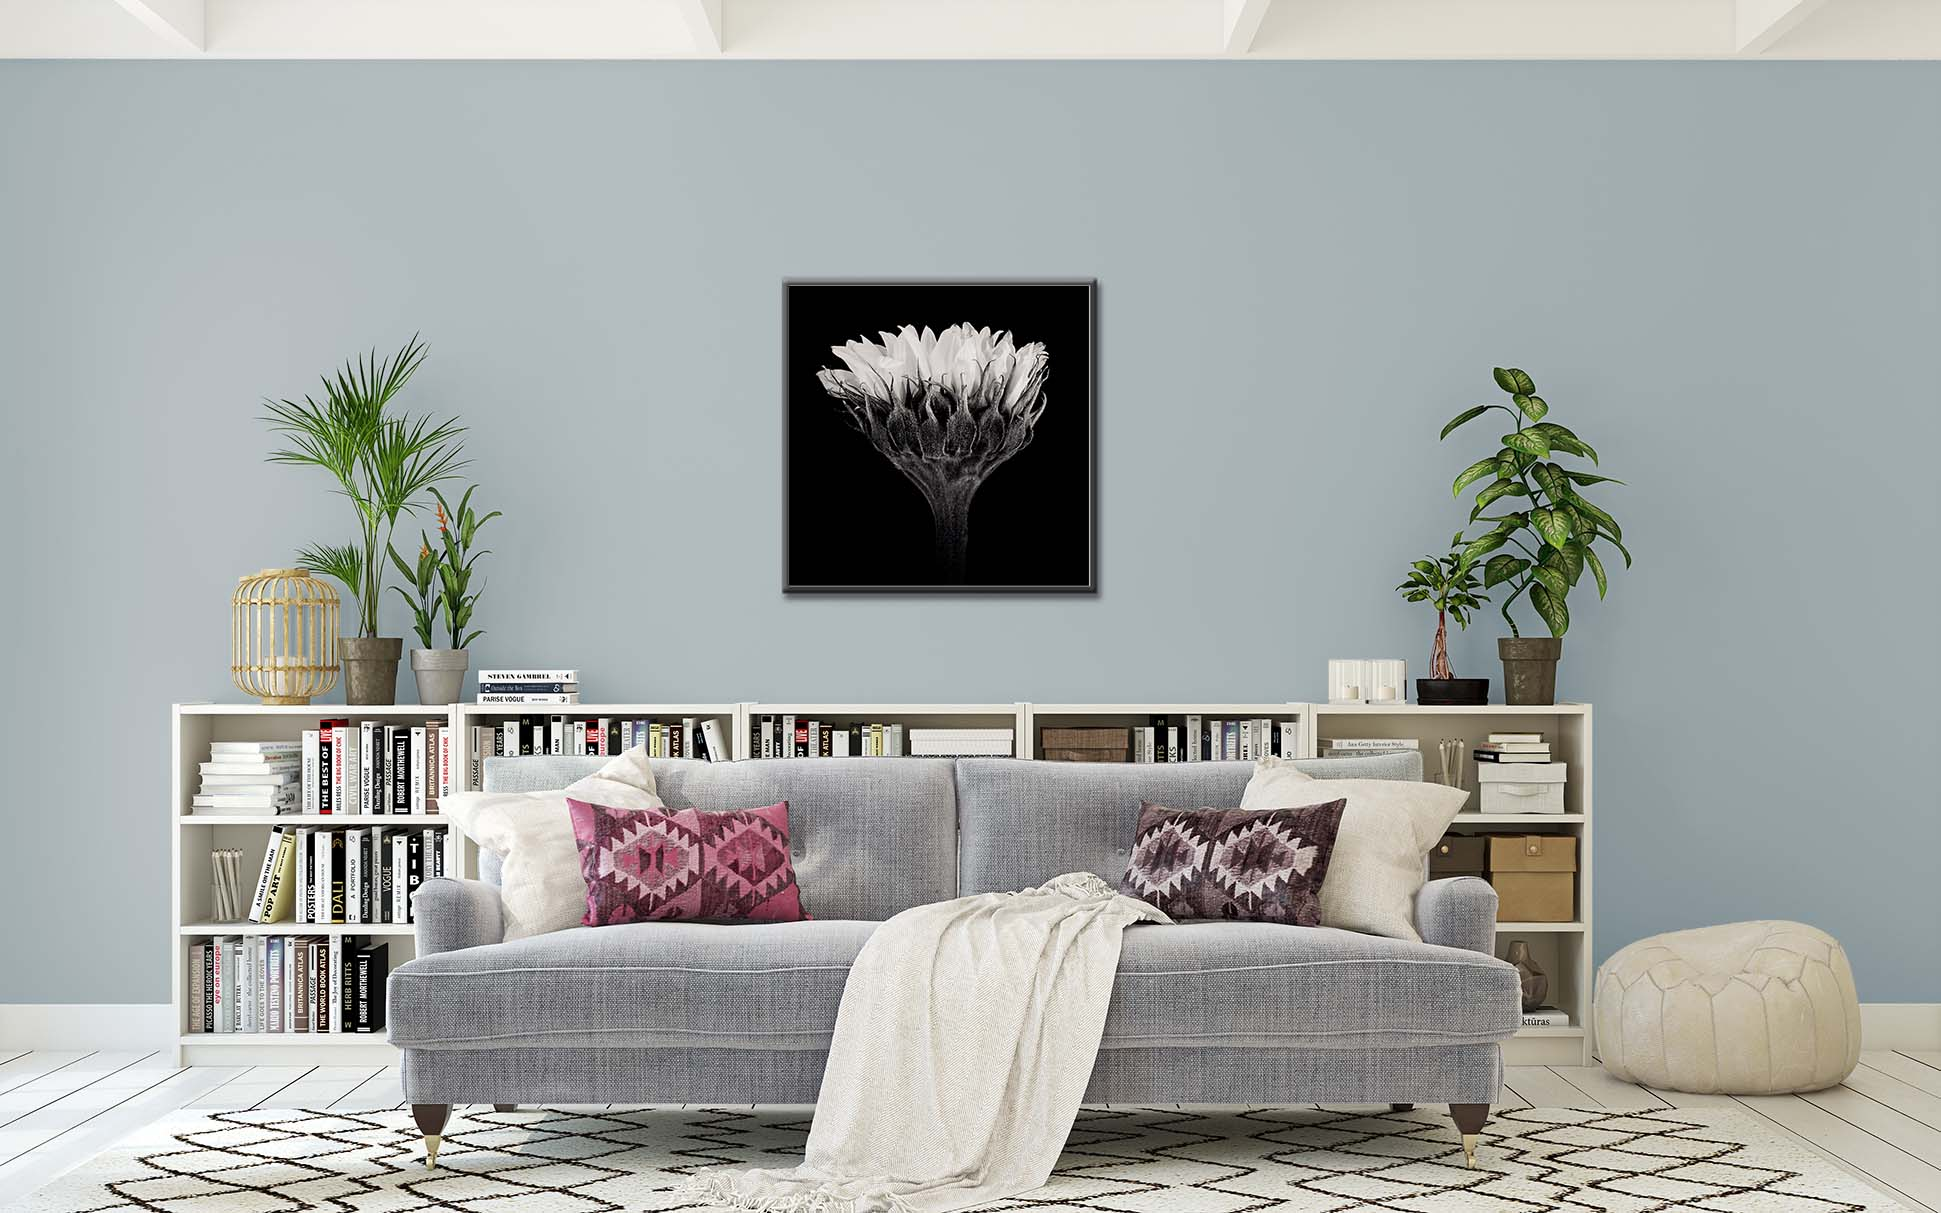 Black and white limited edition print of a Sunflower shown framed and on the wall. Fine art prints by photographer Paul Coghlin.